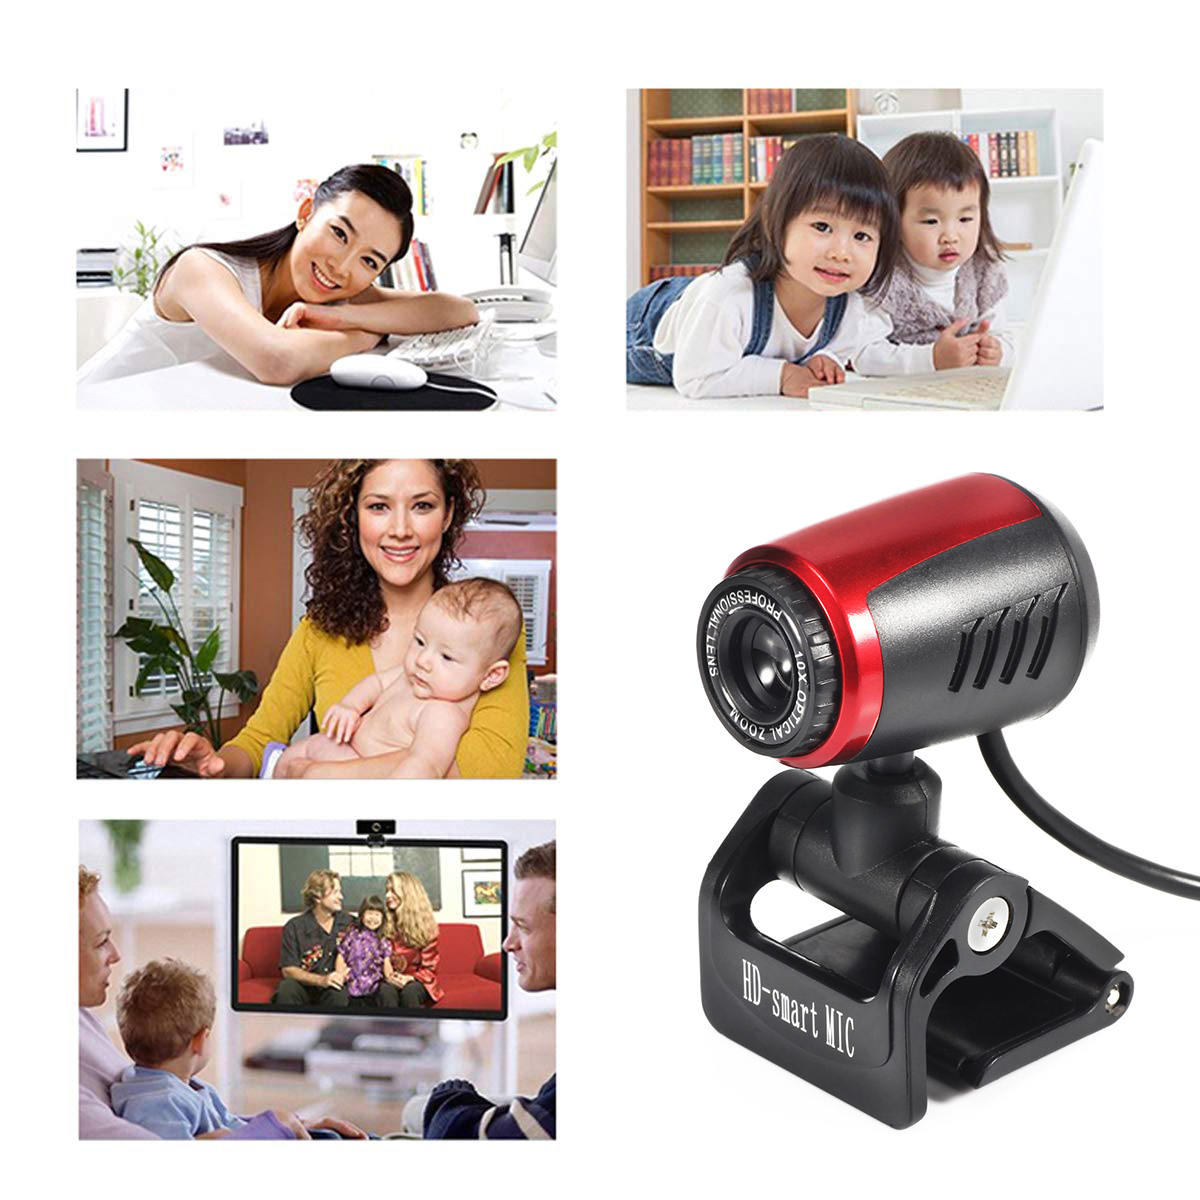 140cm Cable 16 Million Pixels USB 2.0 Webcam Camera Up And Down 60 Degree Rotatable 360 Degree Rotating Head With Mic Auto Focus